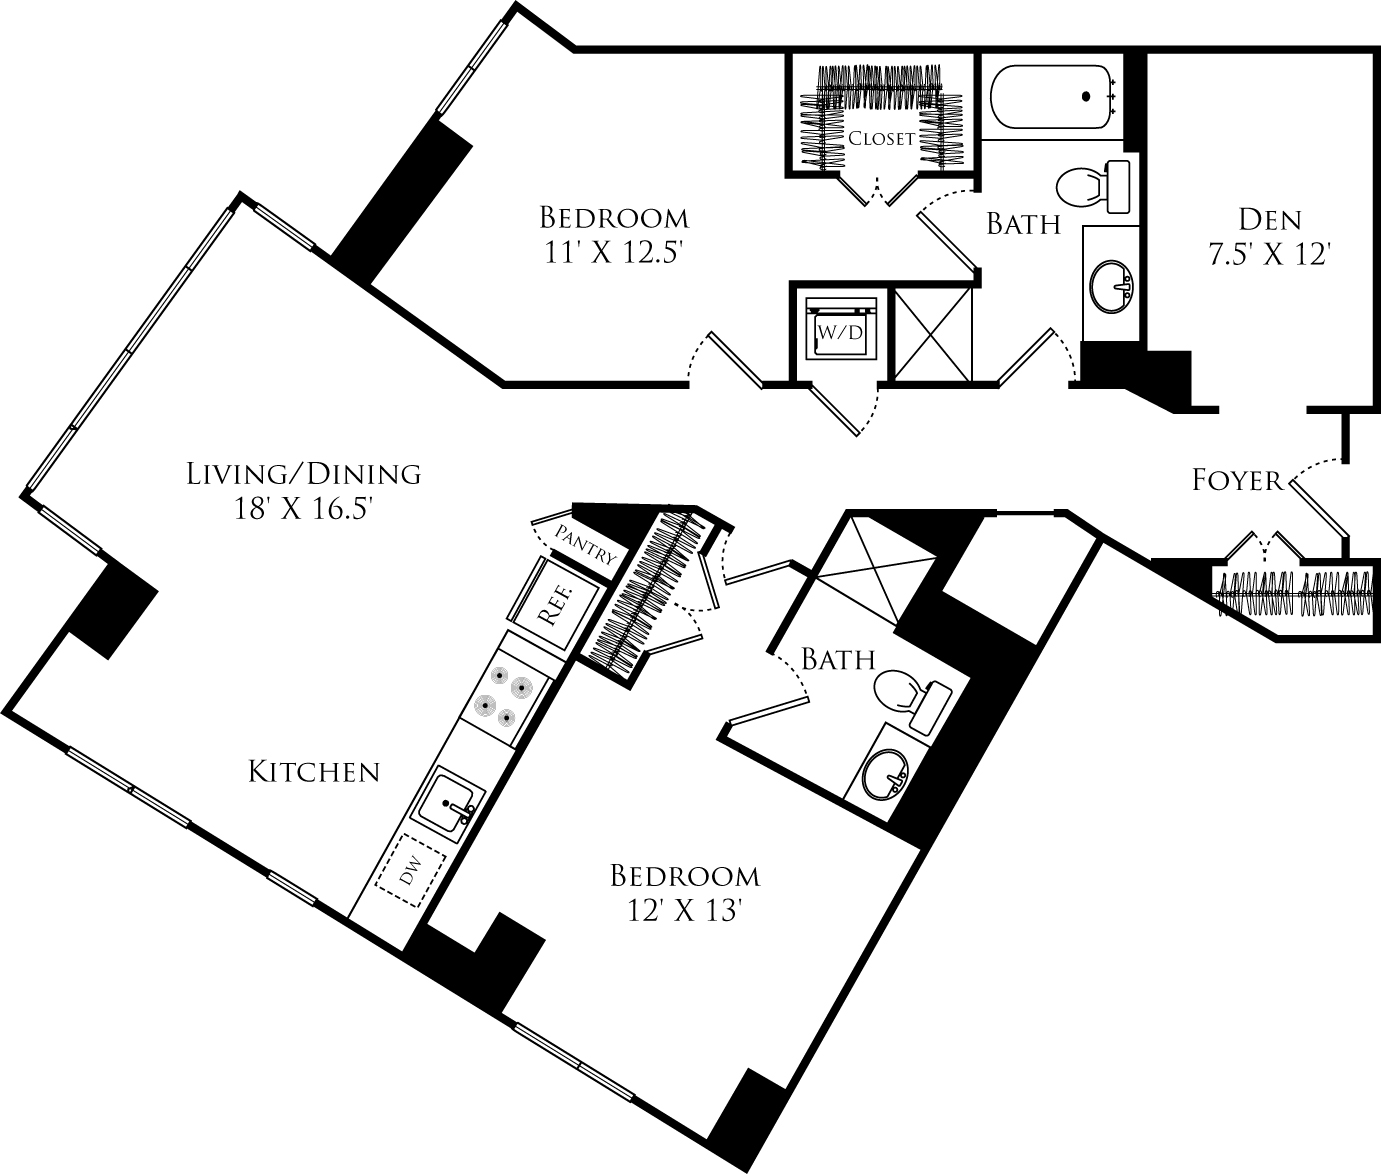 B2L+Den floor plan with 2 beds, 2 baths and is 1178 square feet